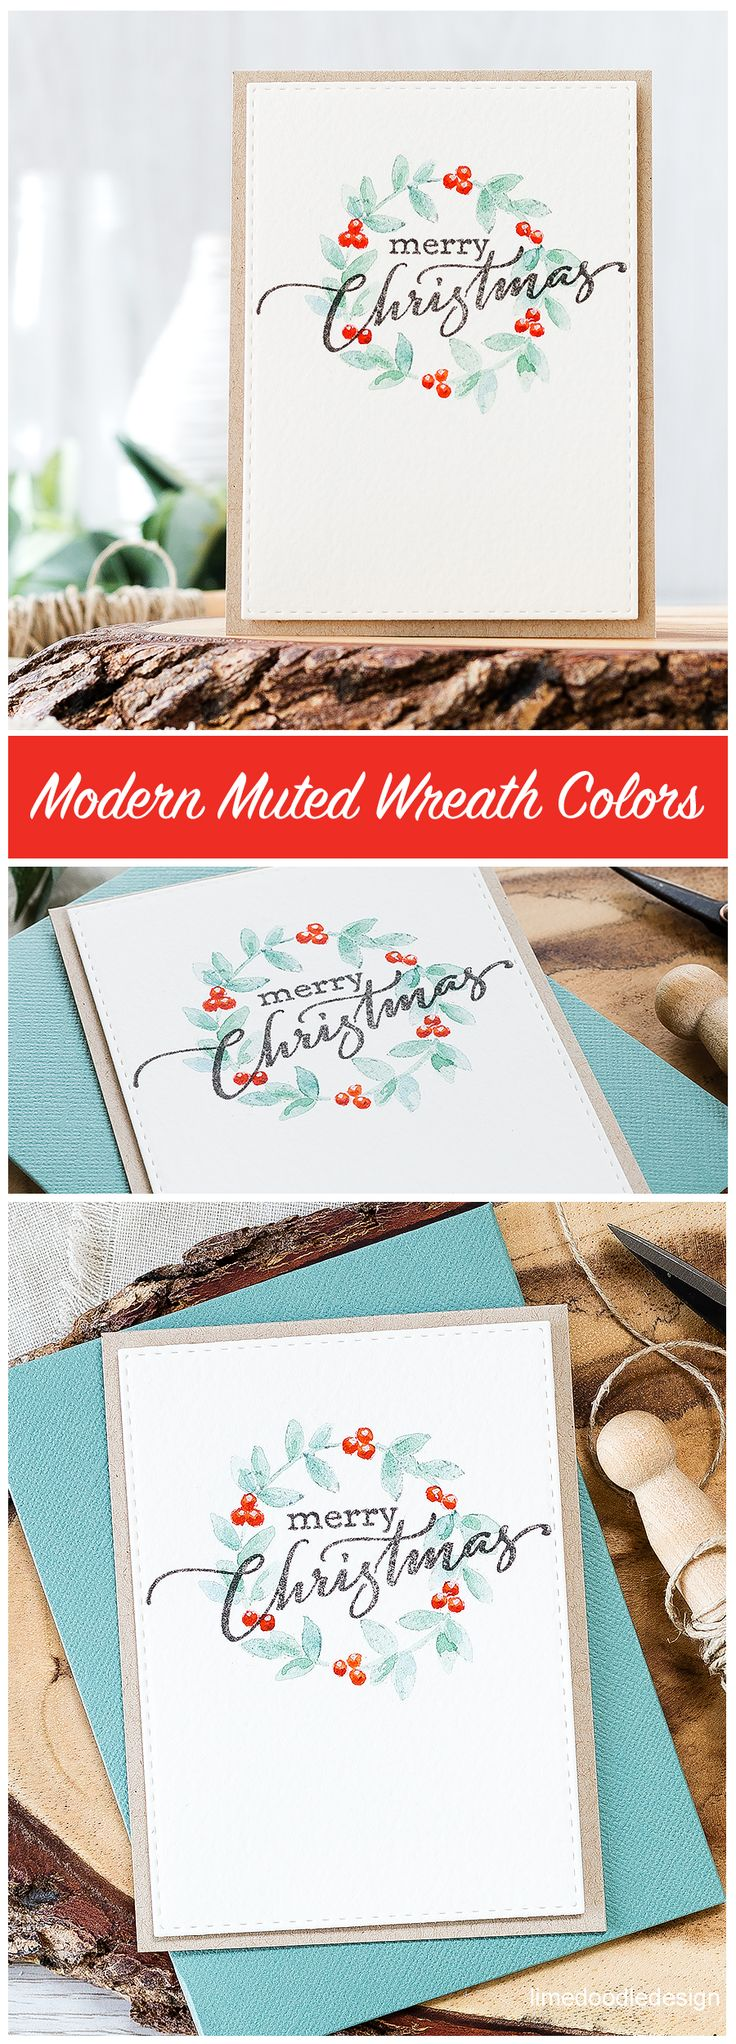 Comparing classic and modern color schemes for a CAS Christmas wreath design | #Debby_Hughes